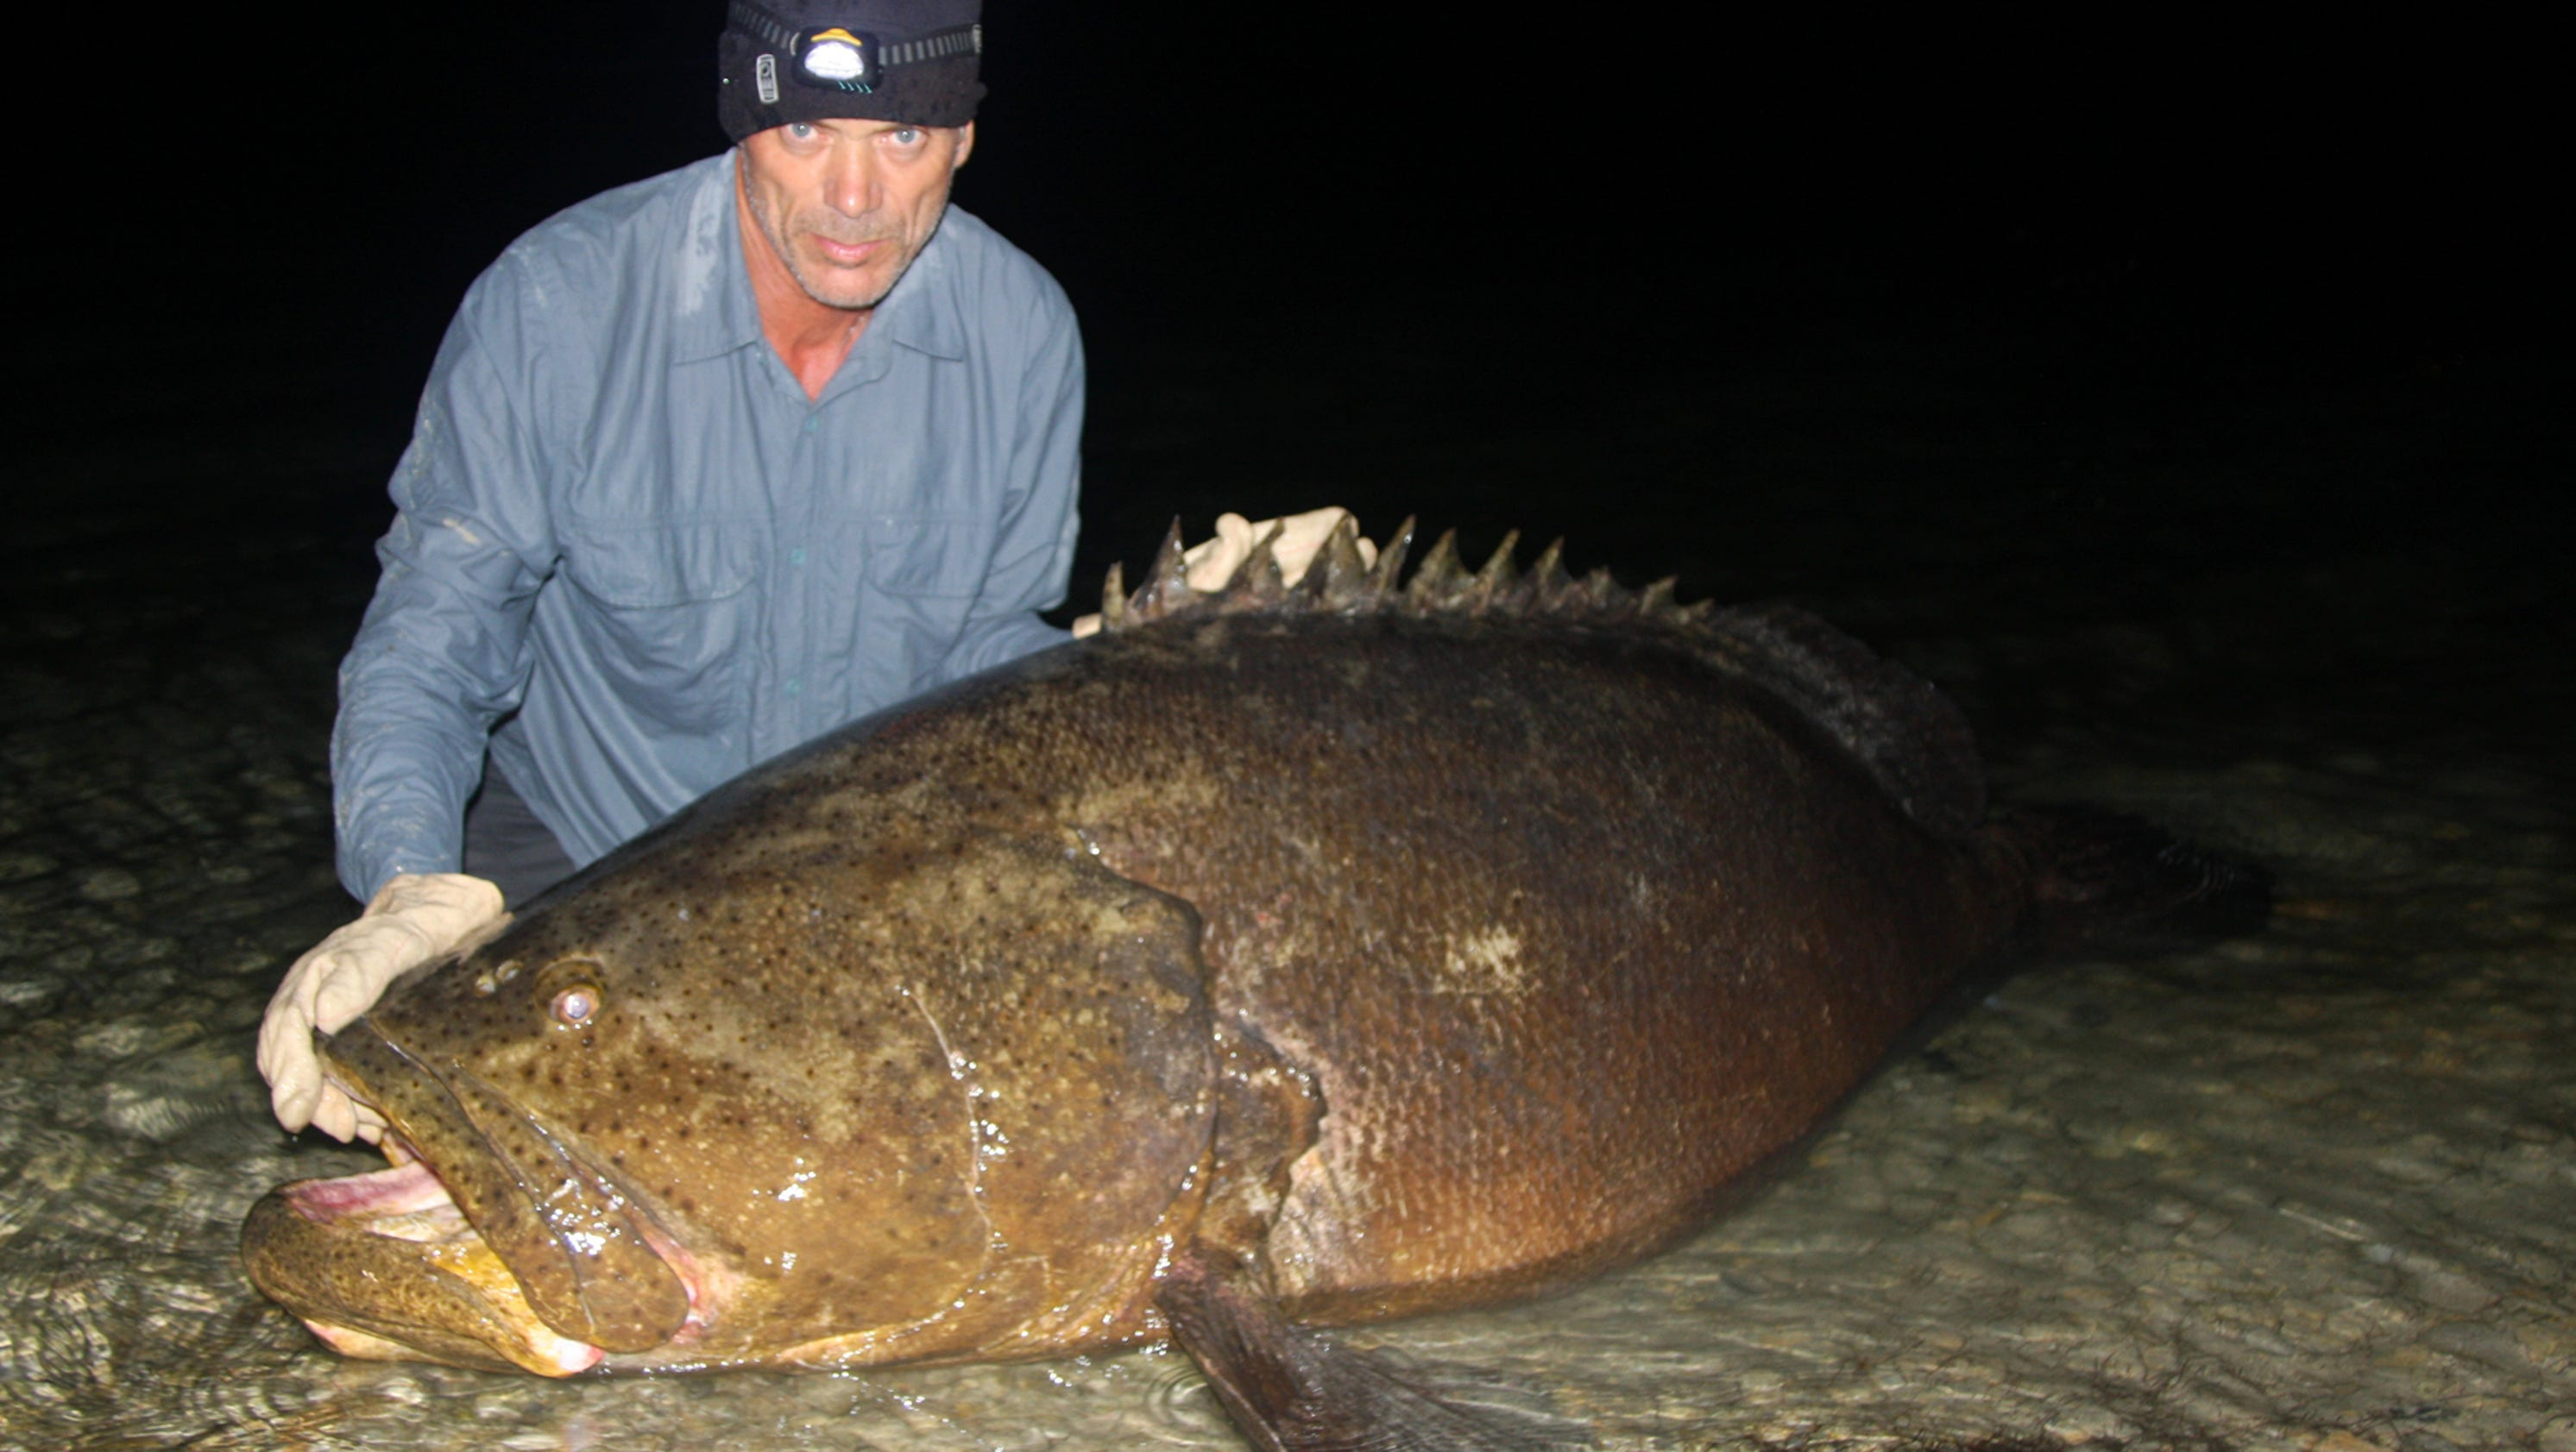 Will Florida allow goliath grouper fishing